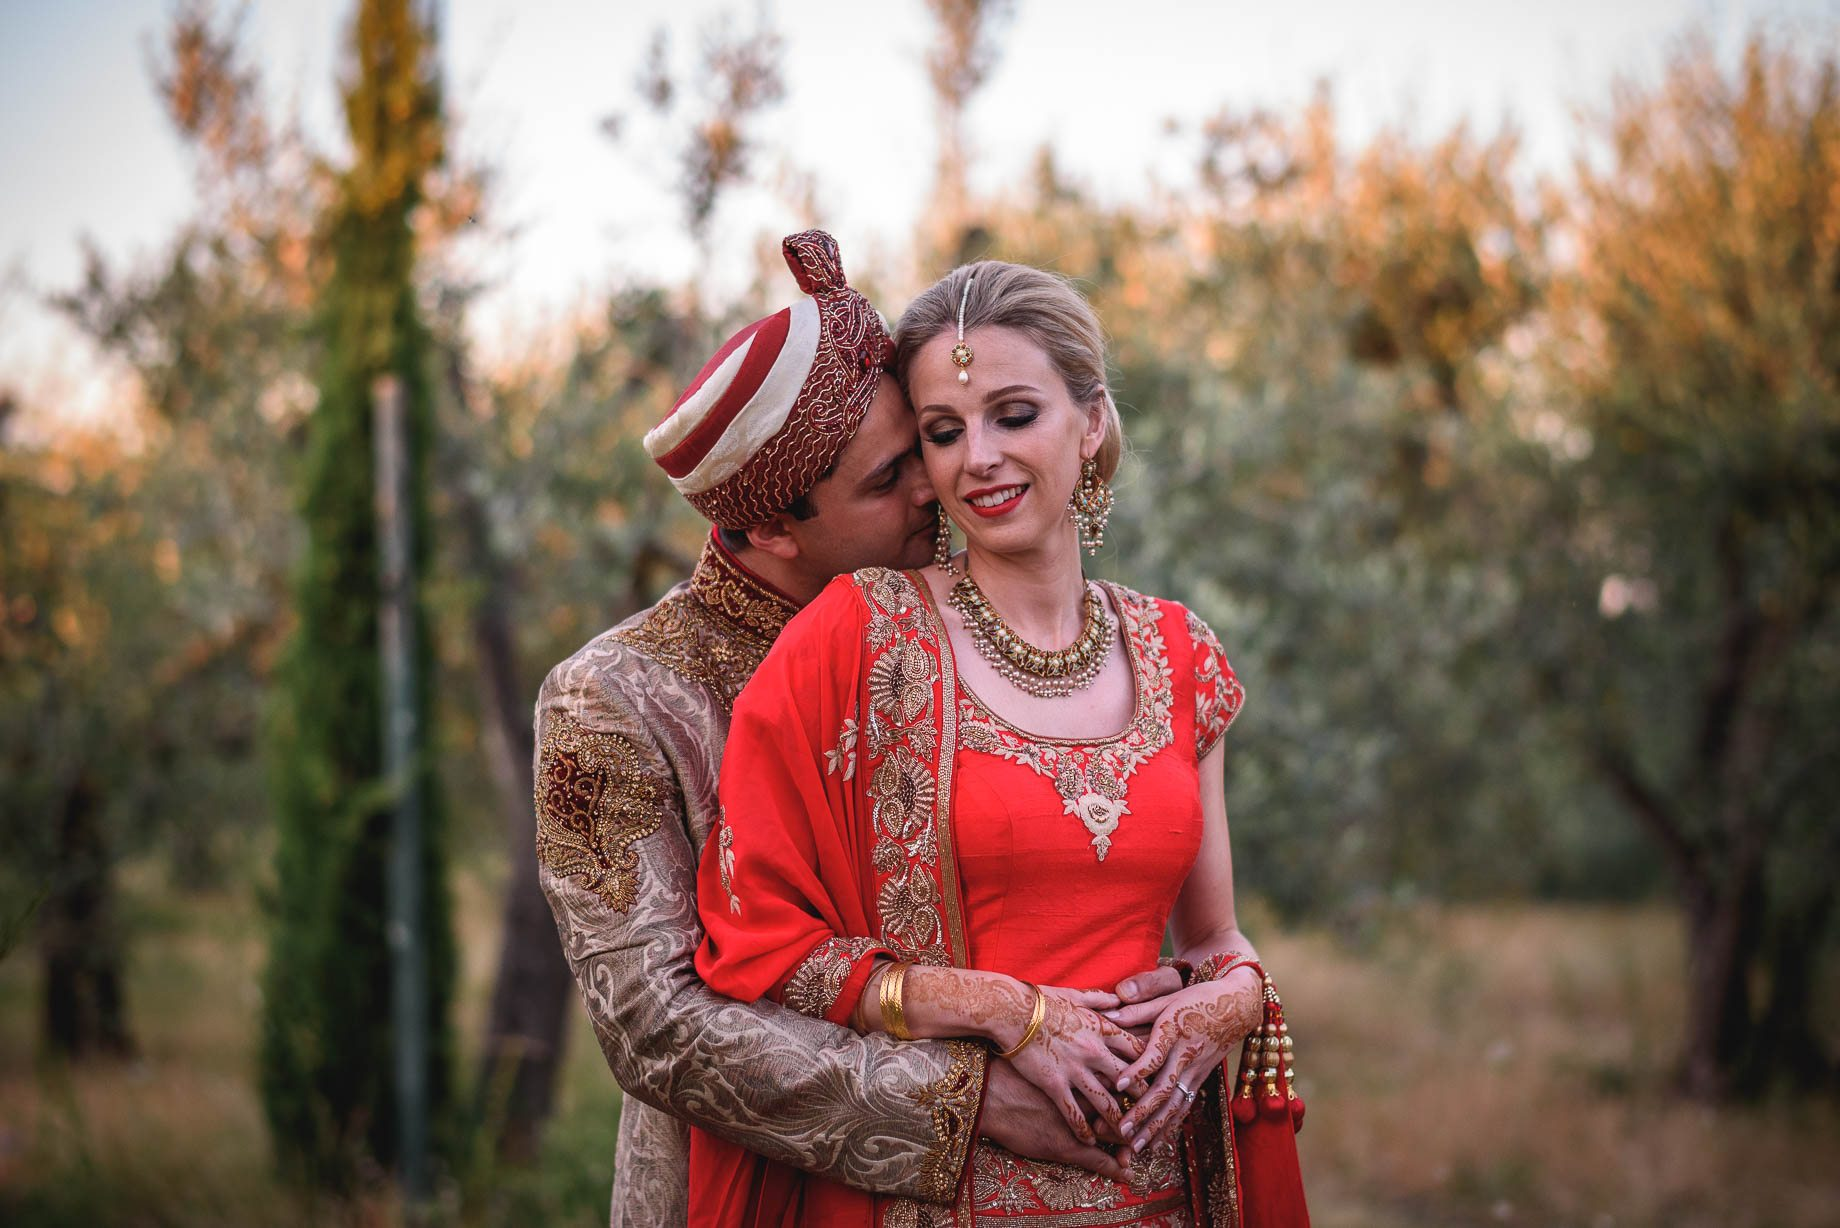 Tuscany wedding photography - Roisin and Moubin - Guy Collier Photography (166 of 194)